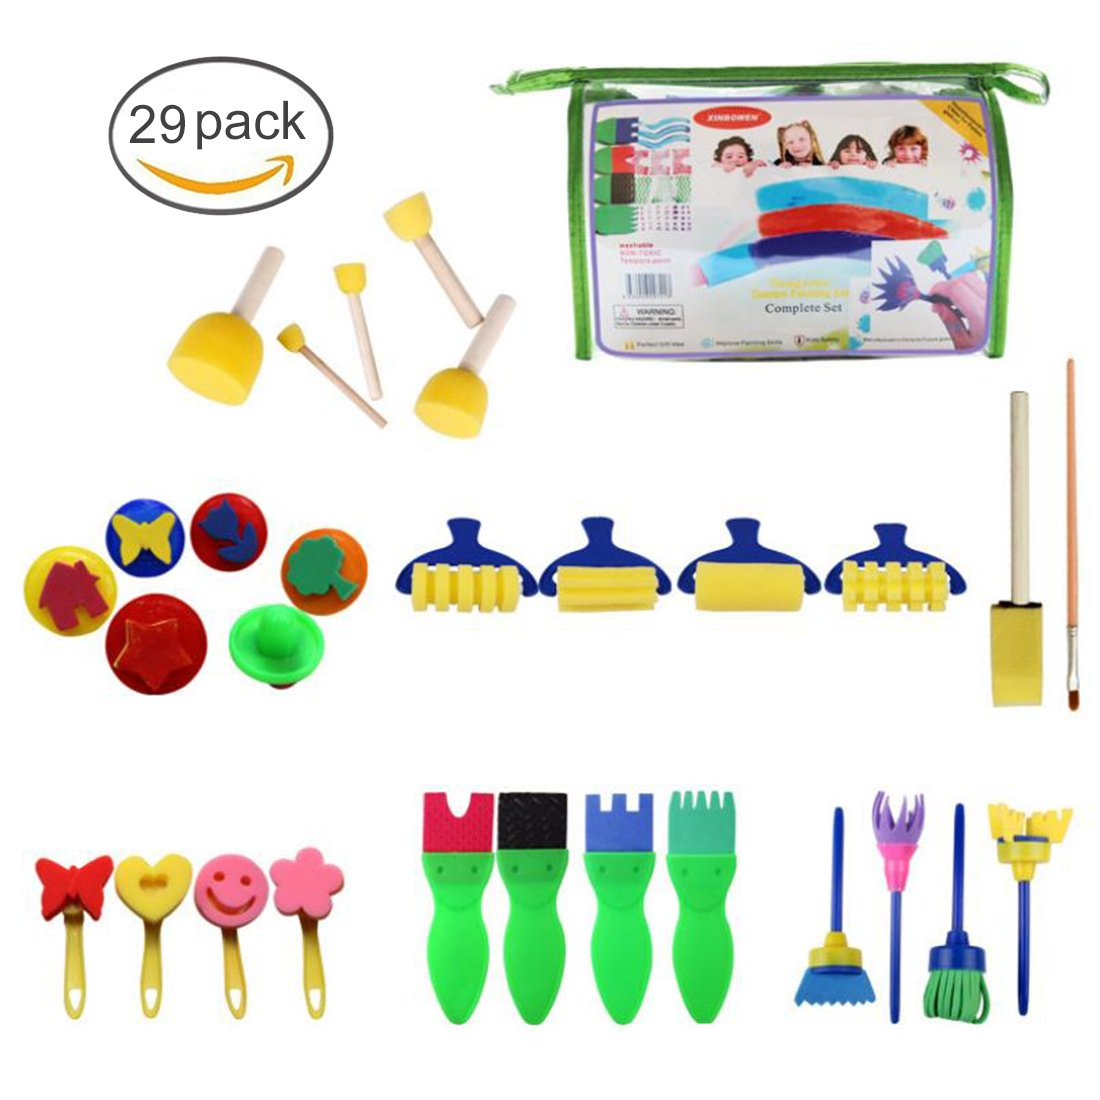 FineInno 26Pcs Kids Paint Brush Set Nylon Hair Brushes Painting Drawing Tools Sponge Brushes Sponge Seal Early Learning Kids Paint Set Painting Kits for Acrylic Oil Watercolor Gouache (26 pcs)